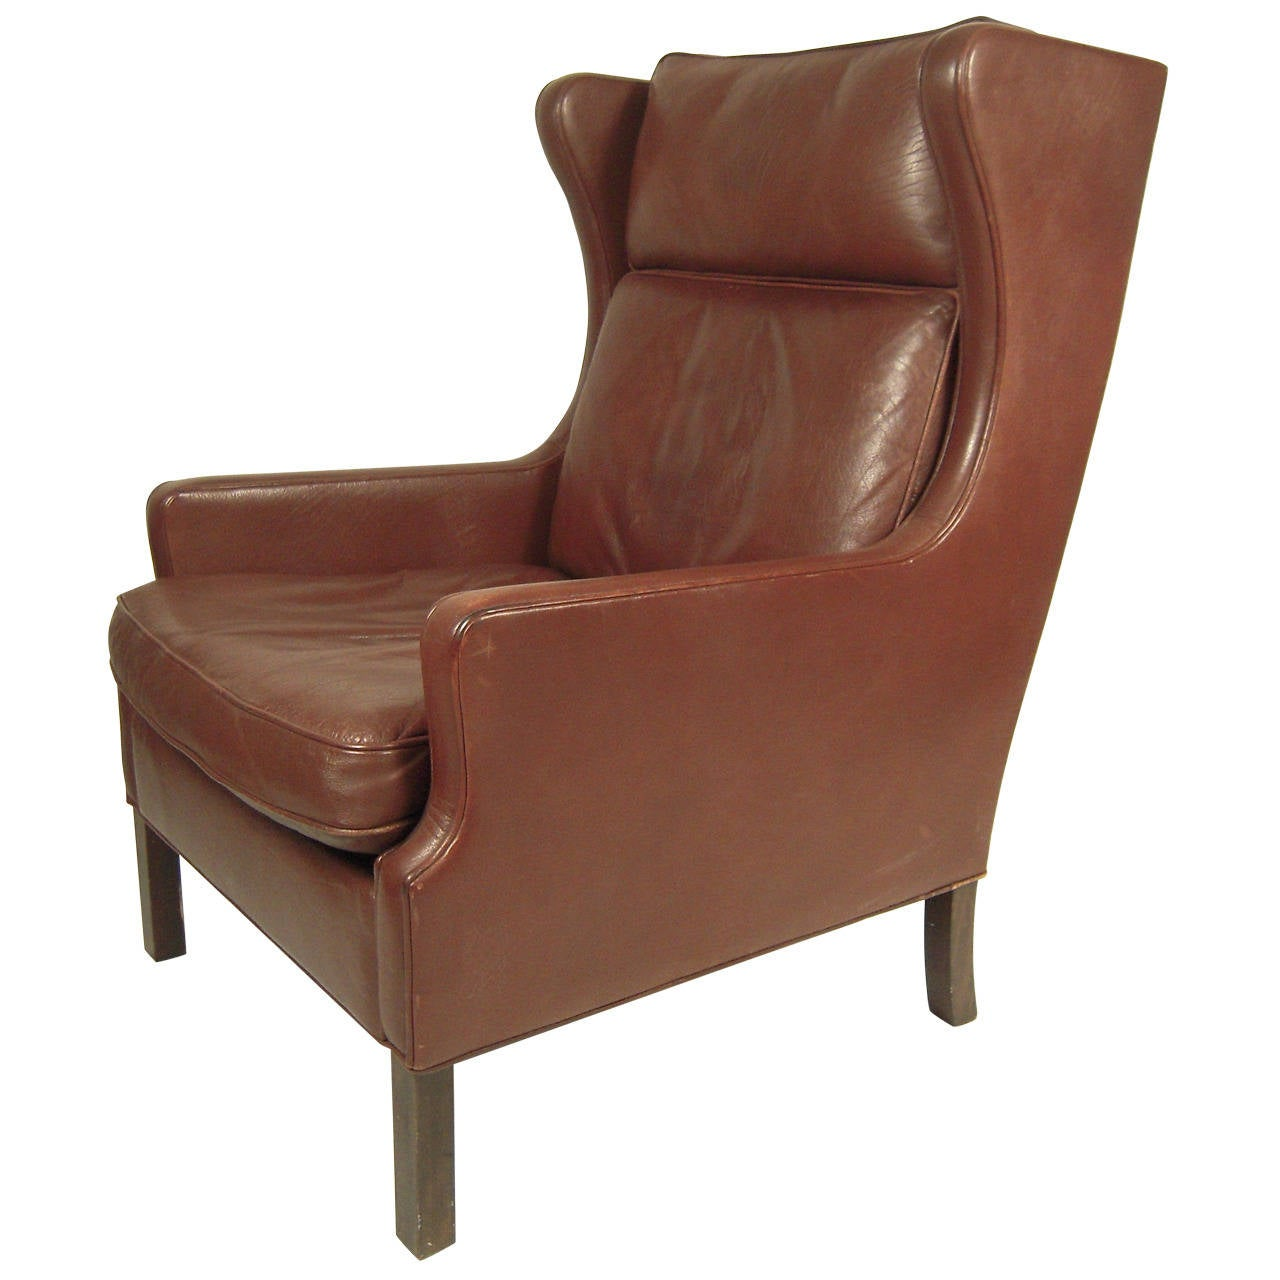 Midcentury Chairs Vintage Danish Mid Century Leather Wingback Chair At 1stdibs